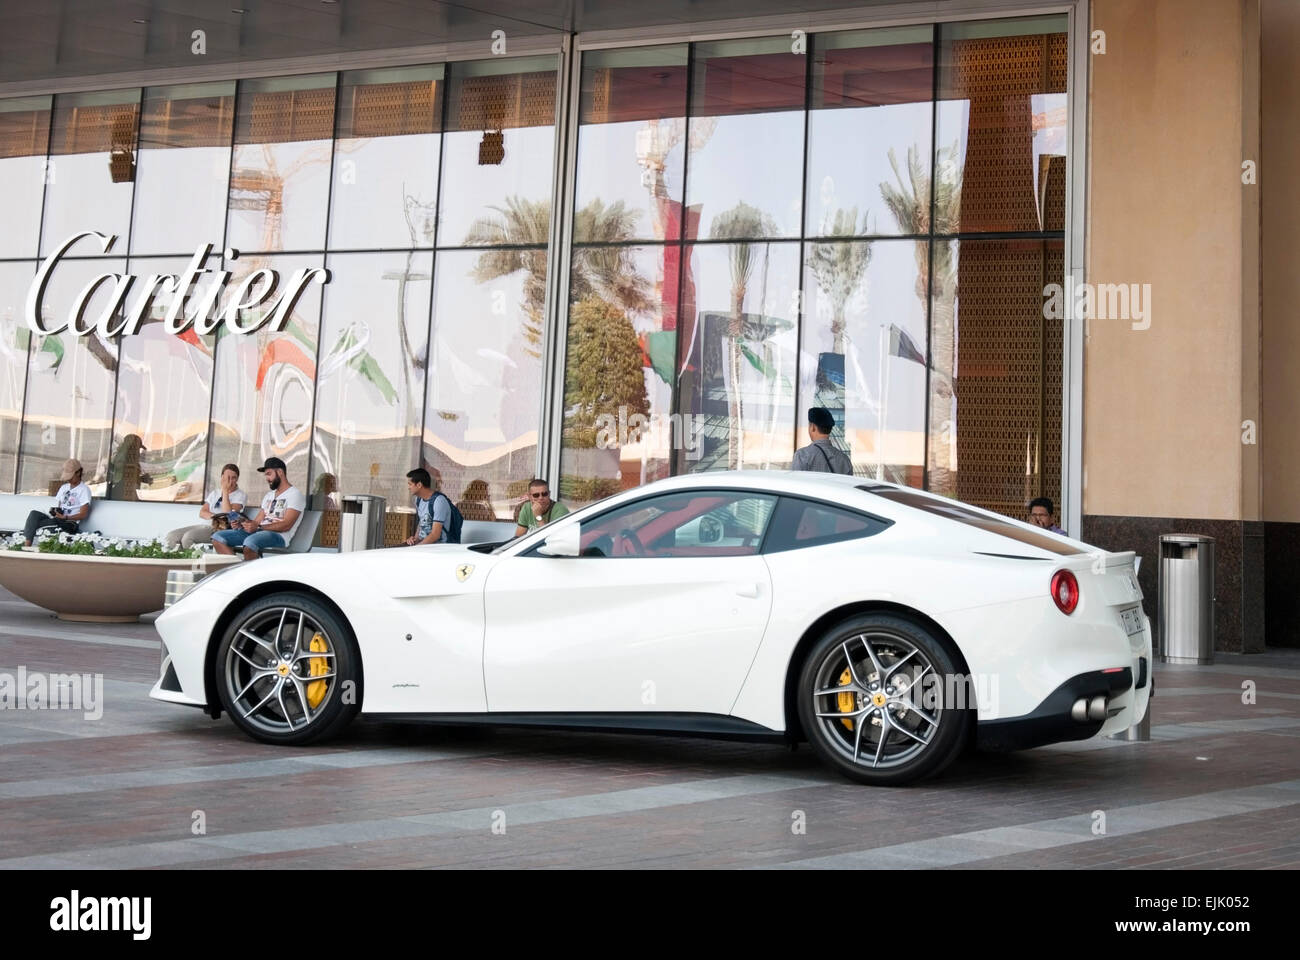 Brilliant White Ferrari F12 Berlinetta Coupe Motor Car Stock Photo Alamy